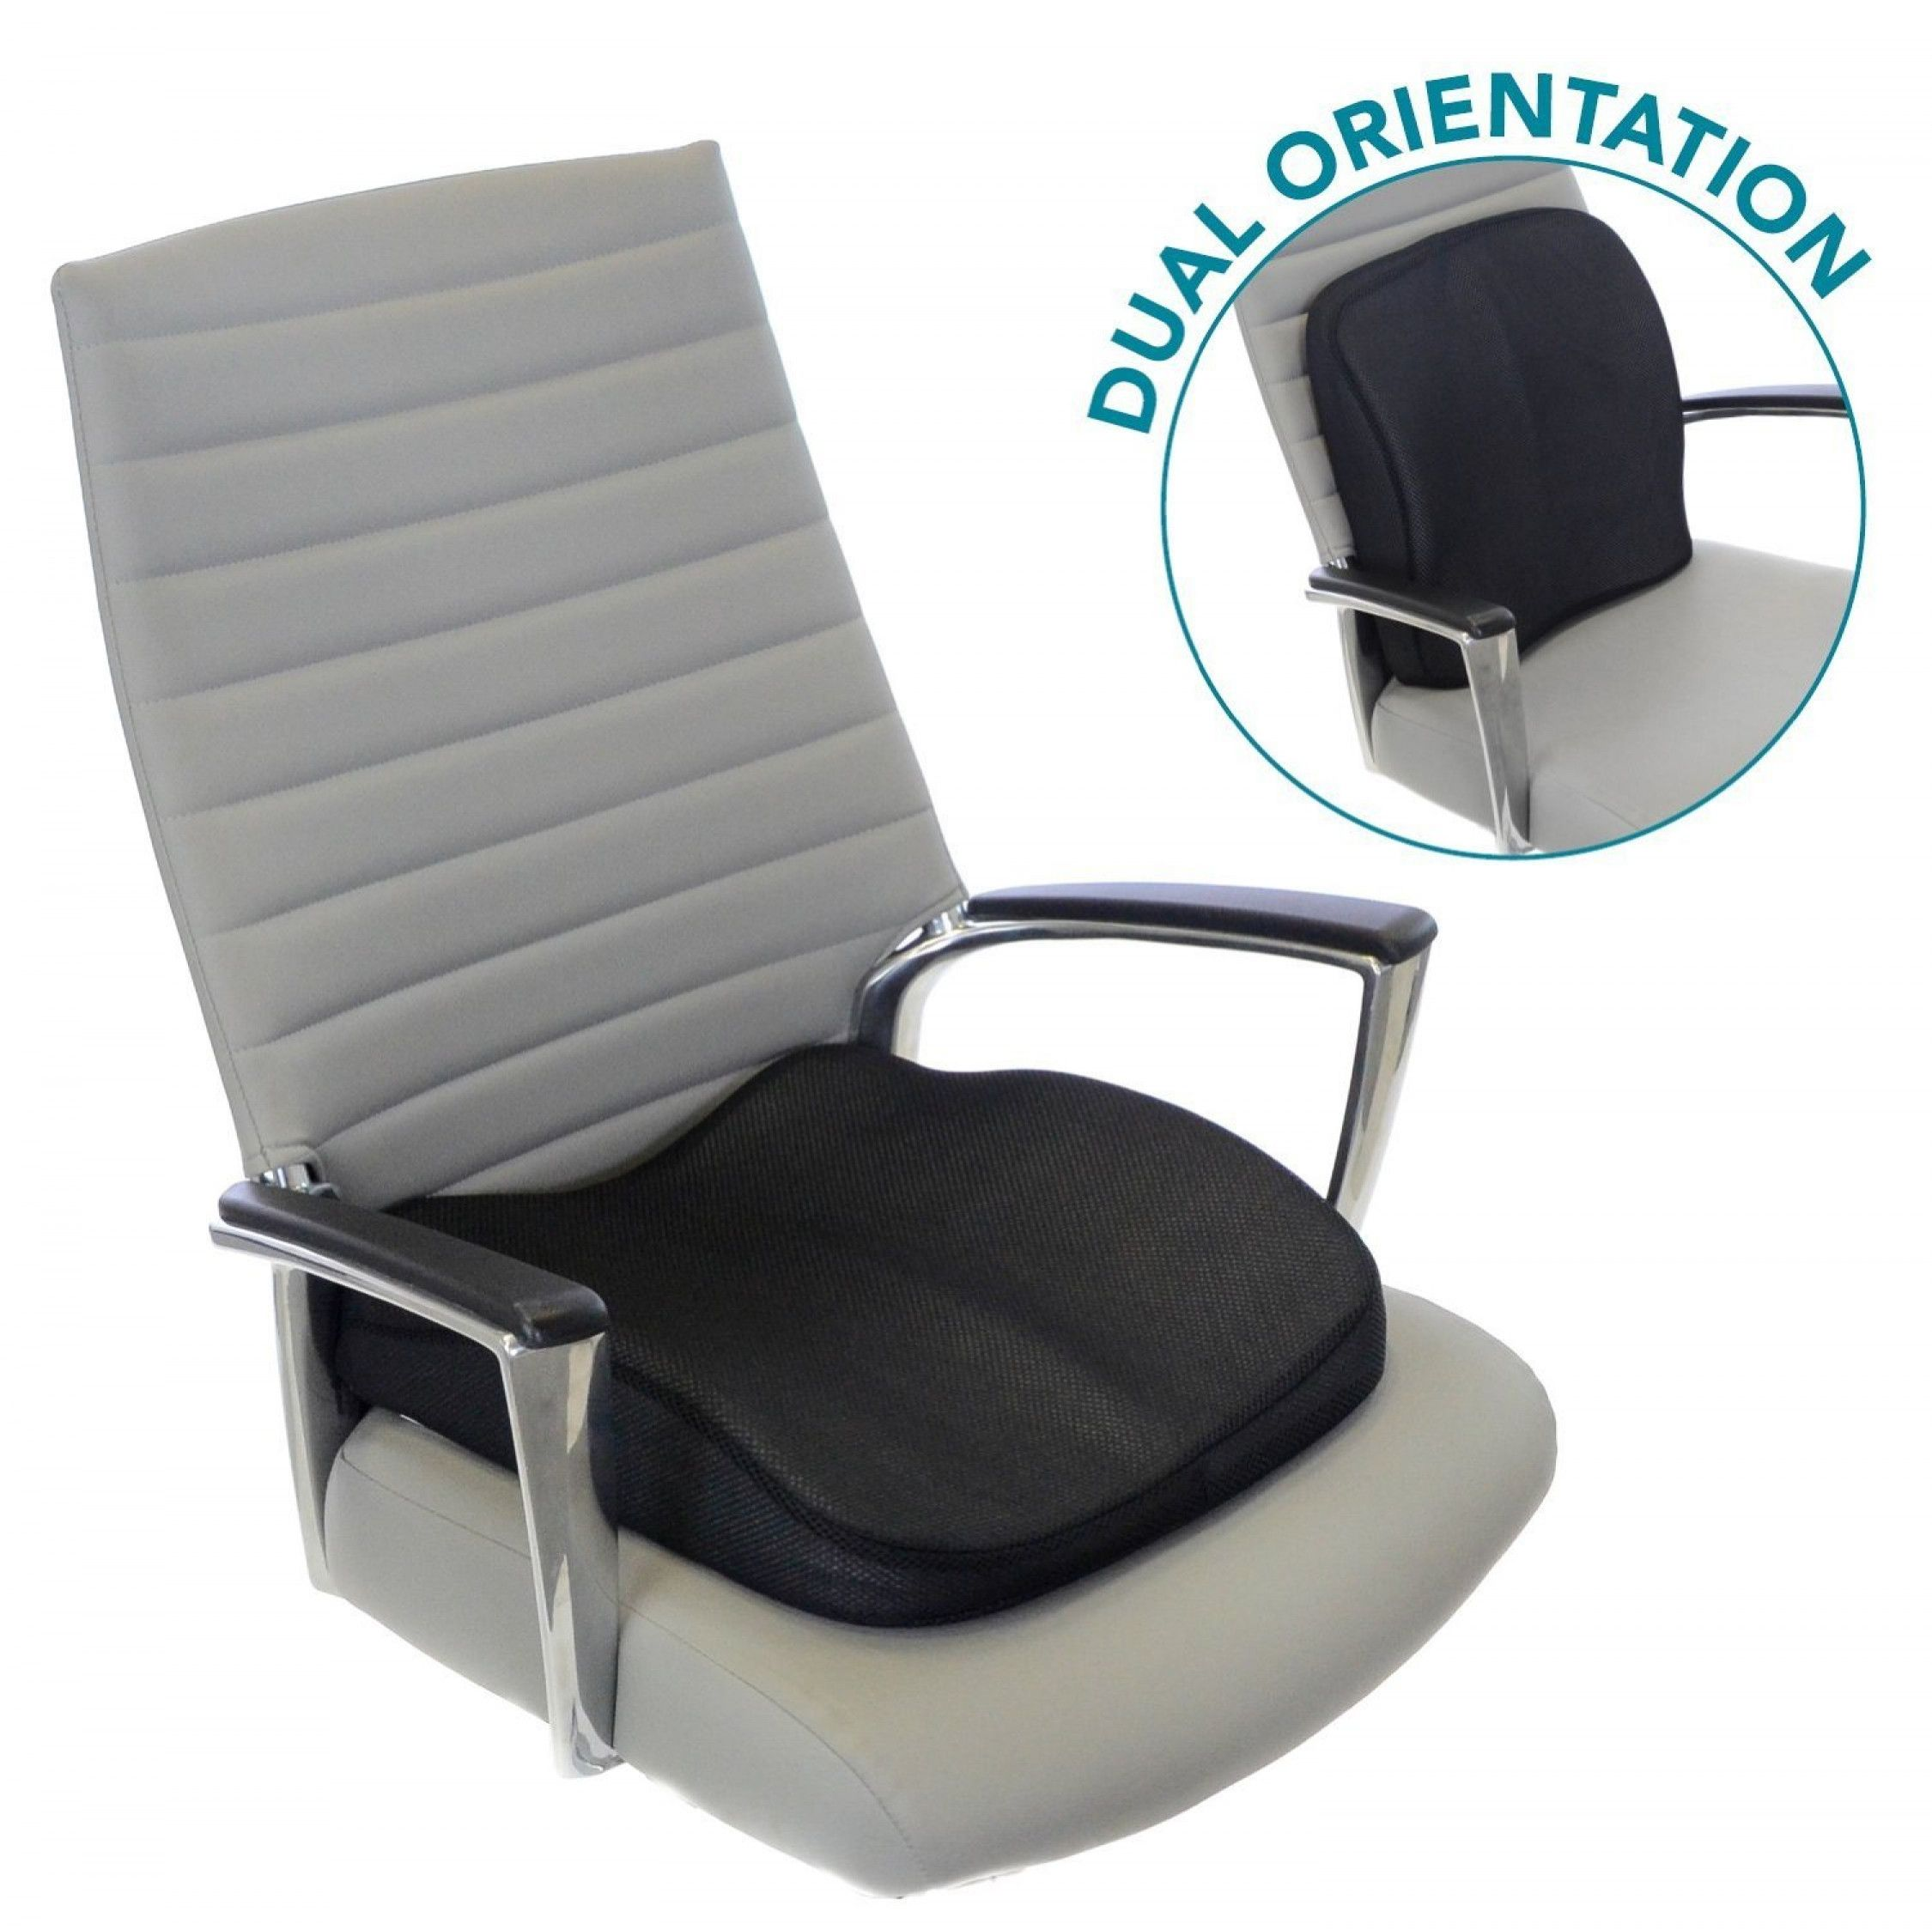 Back Support Seat Cushion For Office Chair